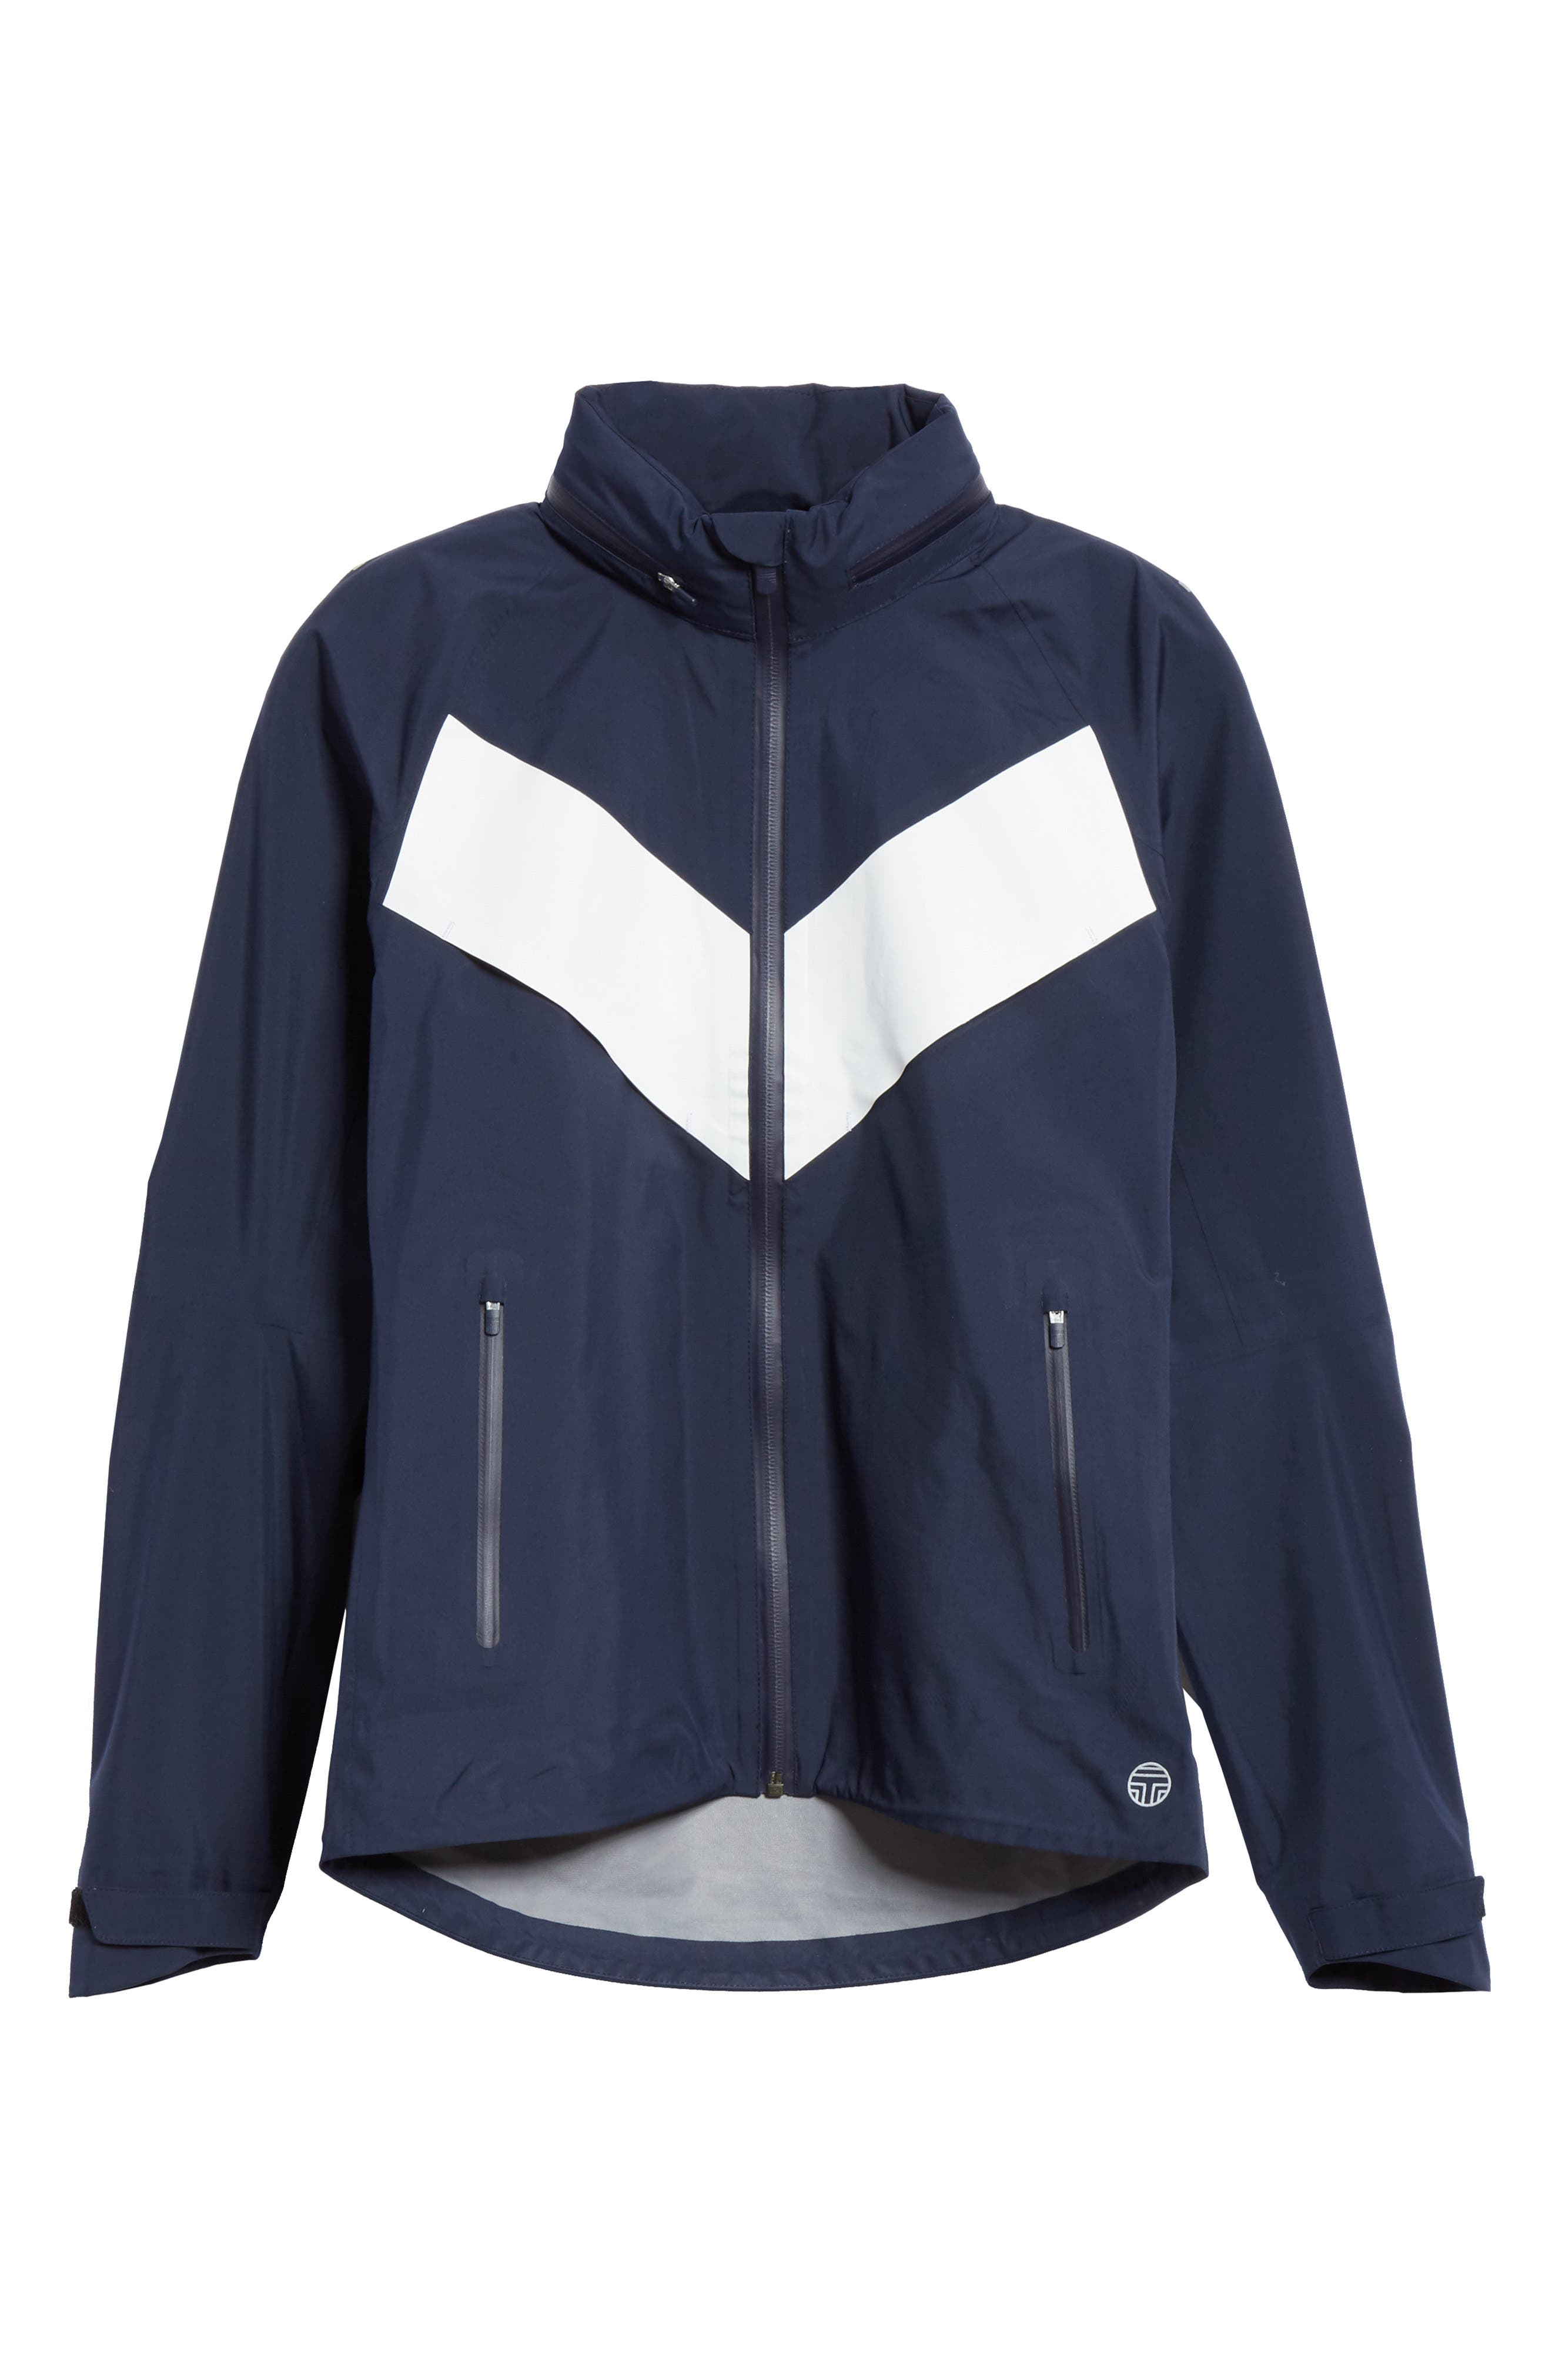 TORY SPORT, All Weather Run Jacket, Alternate thumbnail 6, color, TORY NAVY/ WHITE SNOW